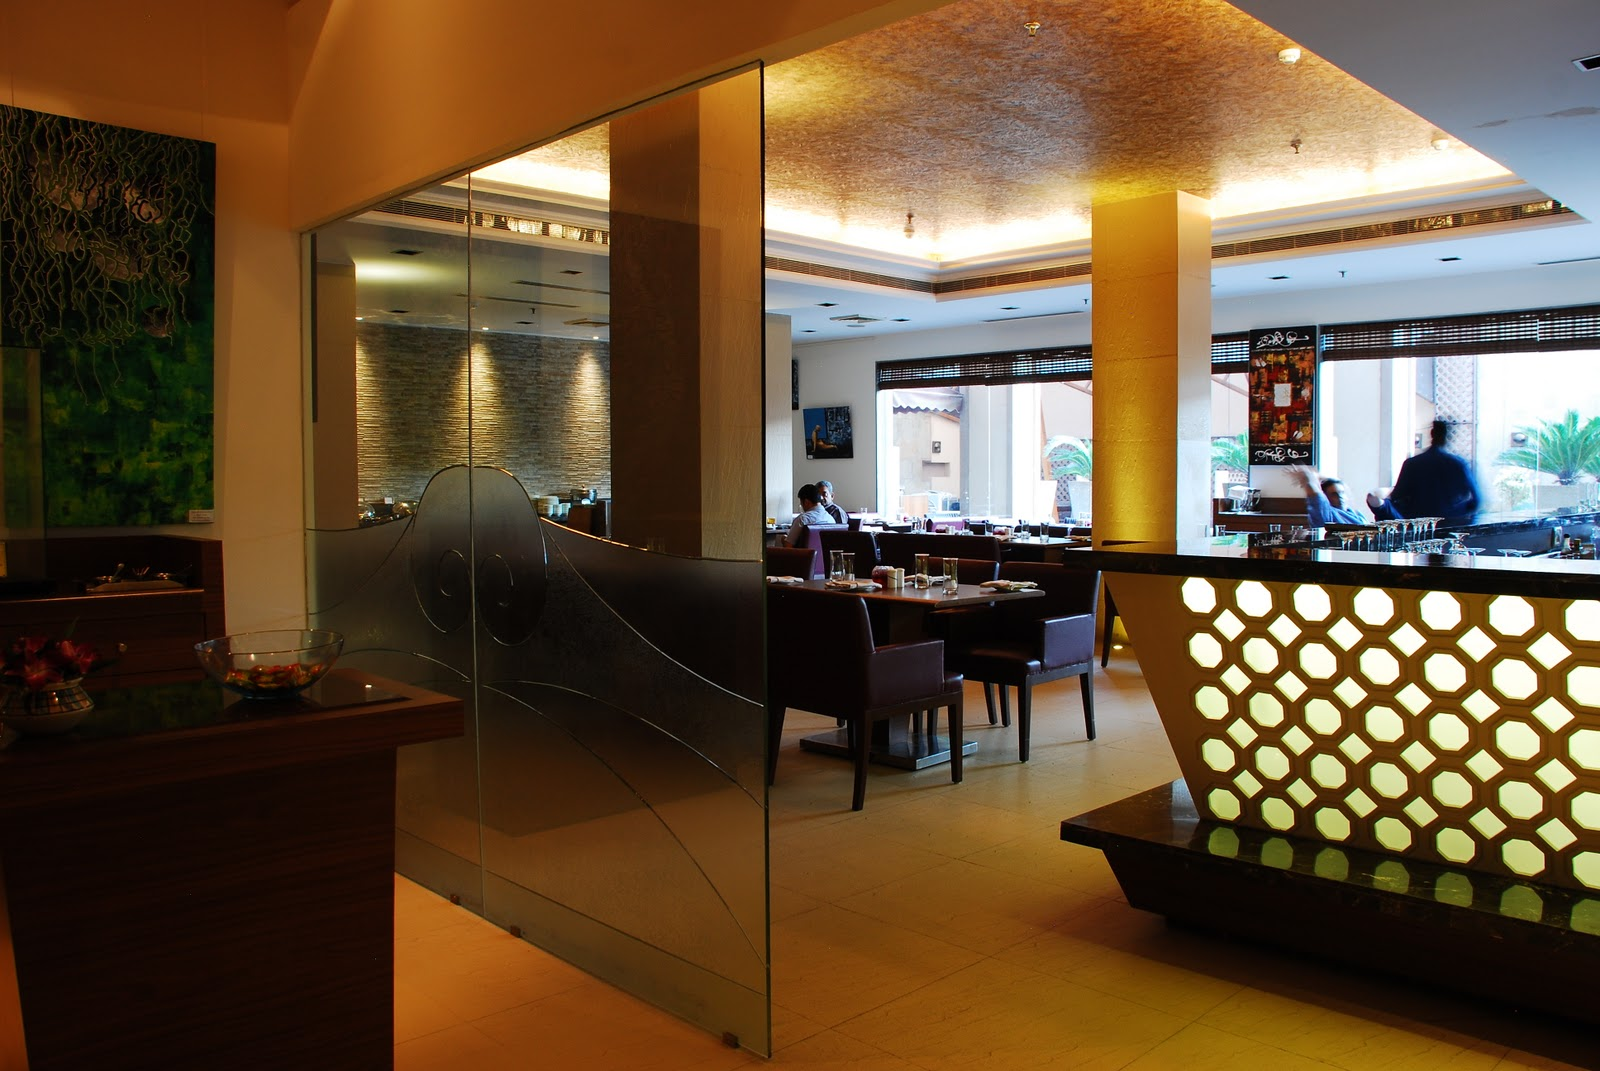 Some best hotels in south delhi small luxury hotels india for Hotel espresso